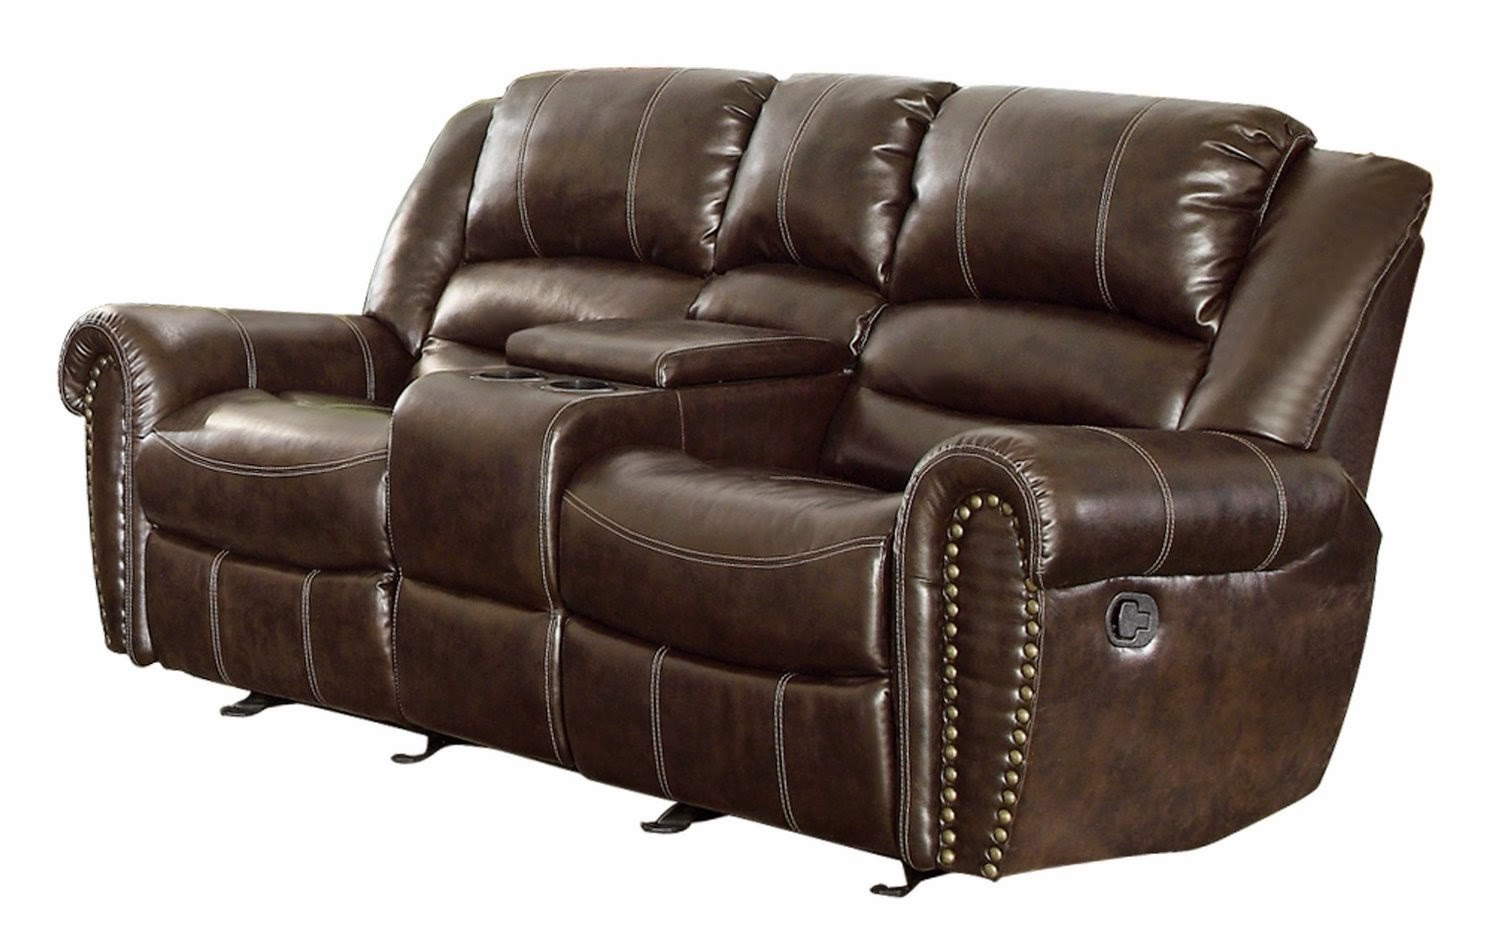 Cheap Reclining Sofas Sale 2 Seater Leather Recliner Sofa  : 2 seater leather recliner sofa sale glider from cheaprecliningsofassale.blogspot.com size 1500 x 944 jpeg 138kB